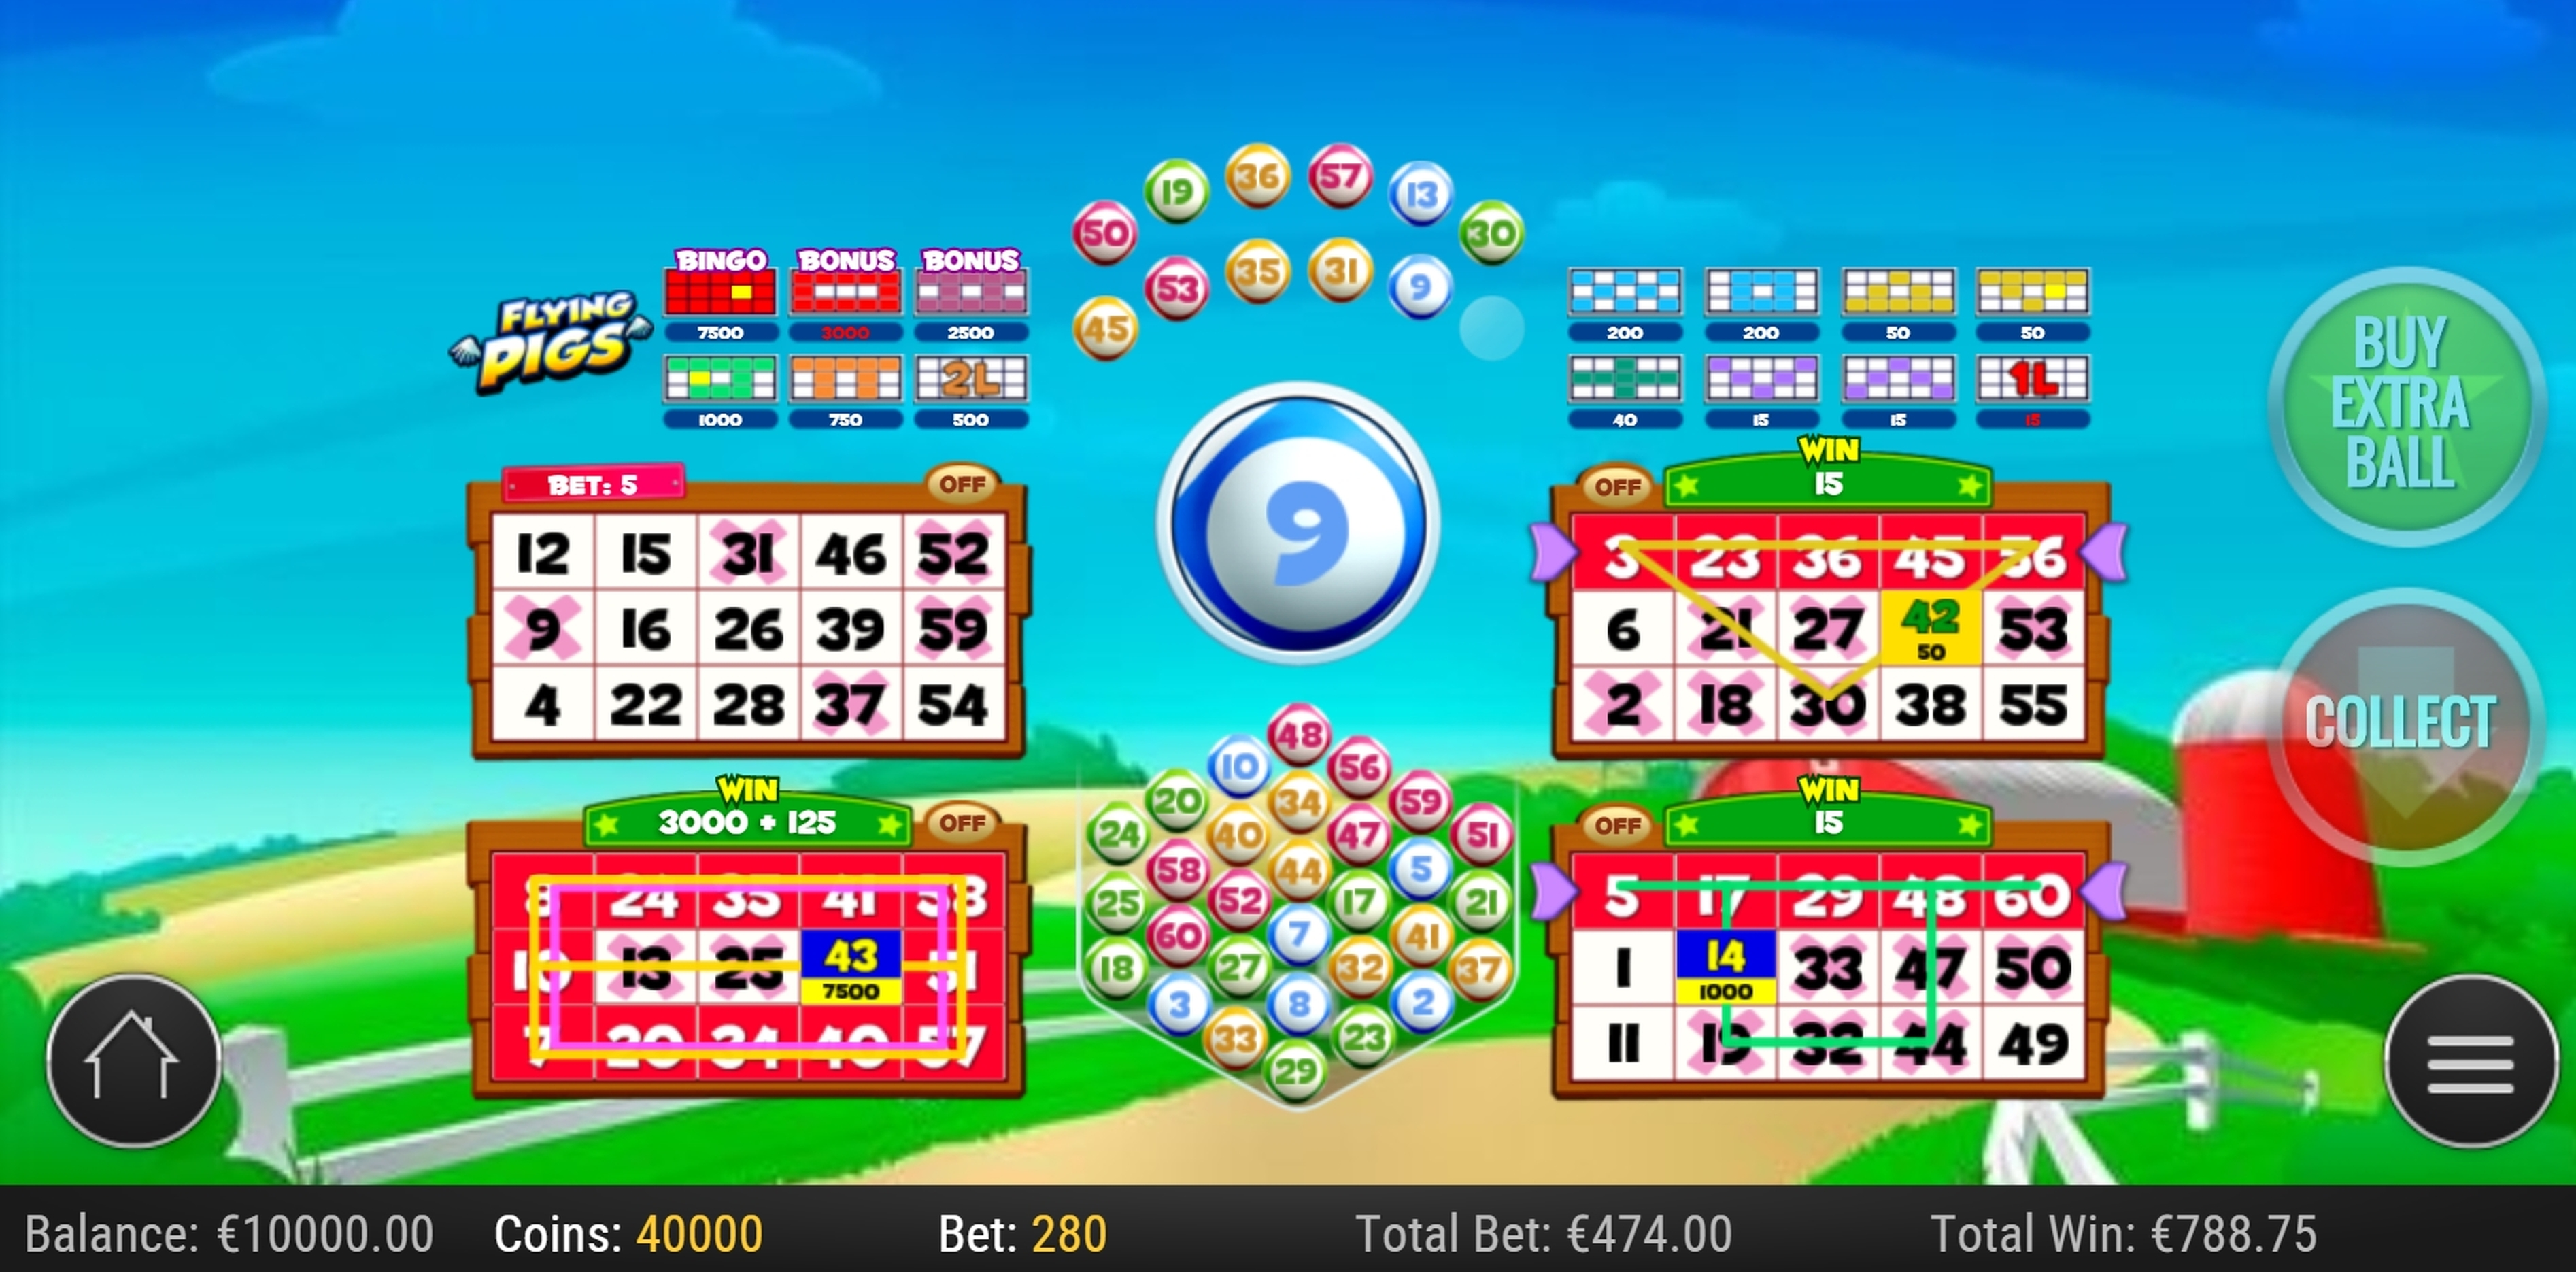 Win Money in Flying Pigs Free Slot Game by Playn GO